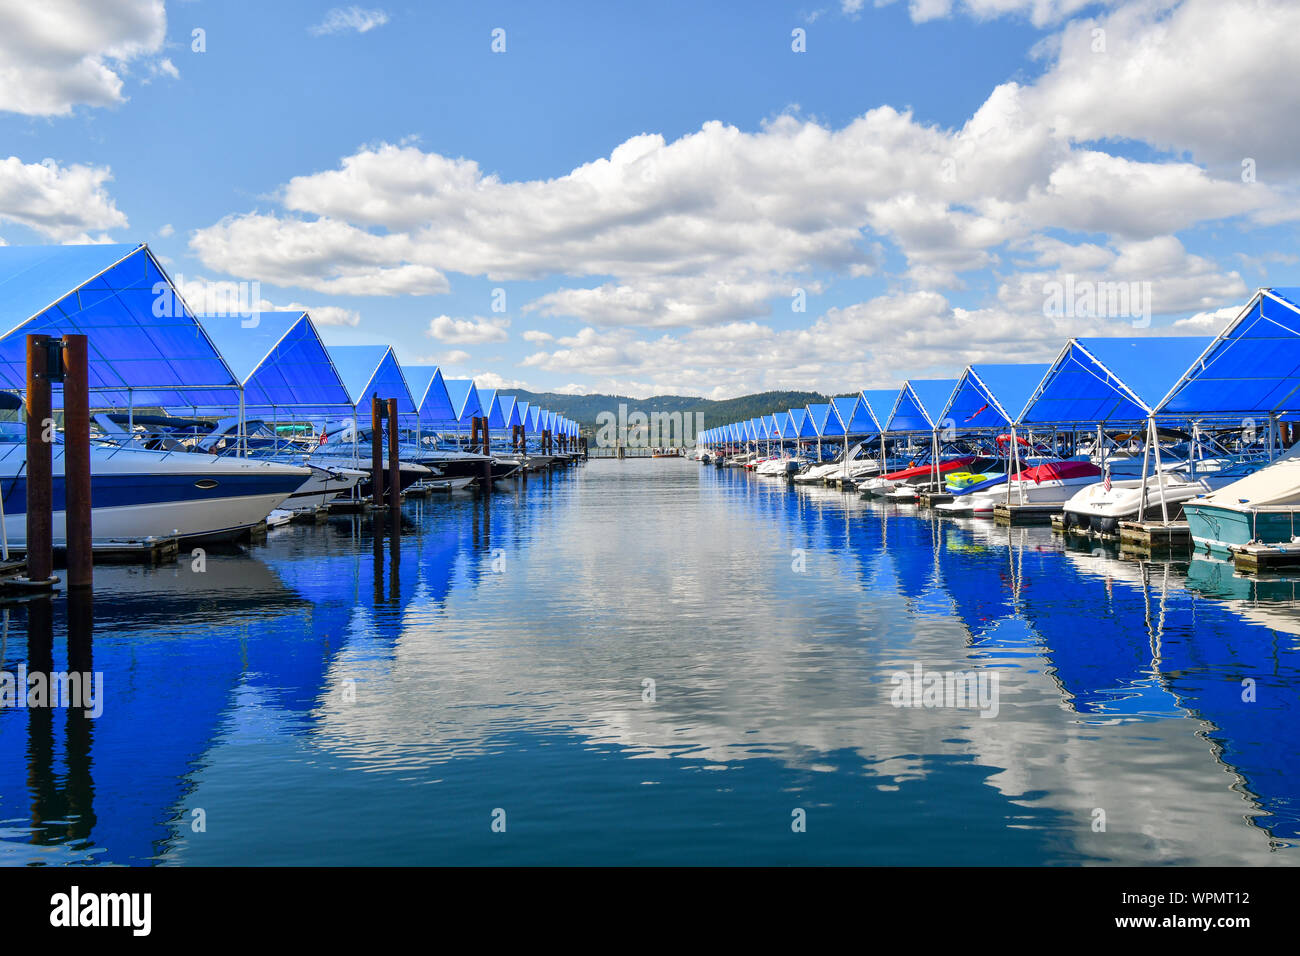 Boats line up in boat slips at the floating boardwalk marina at the Coeur d'Alene Resort in Coeur d'Alene, Idaho. Stock Photo